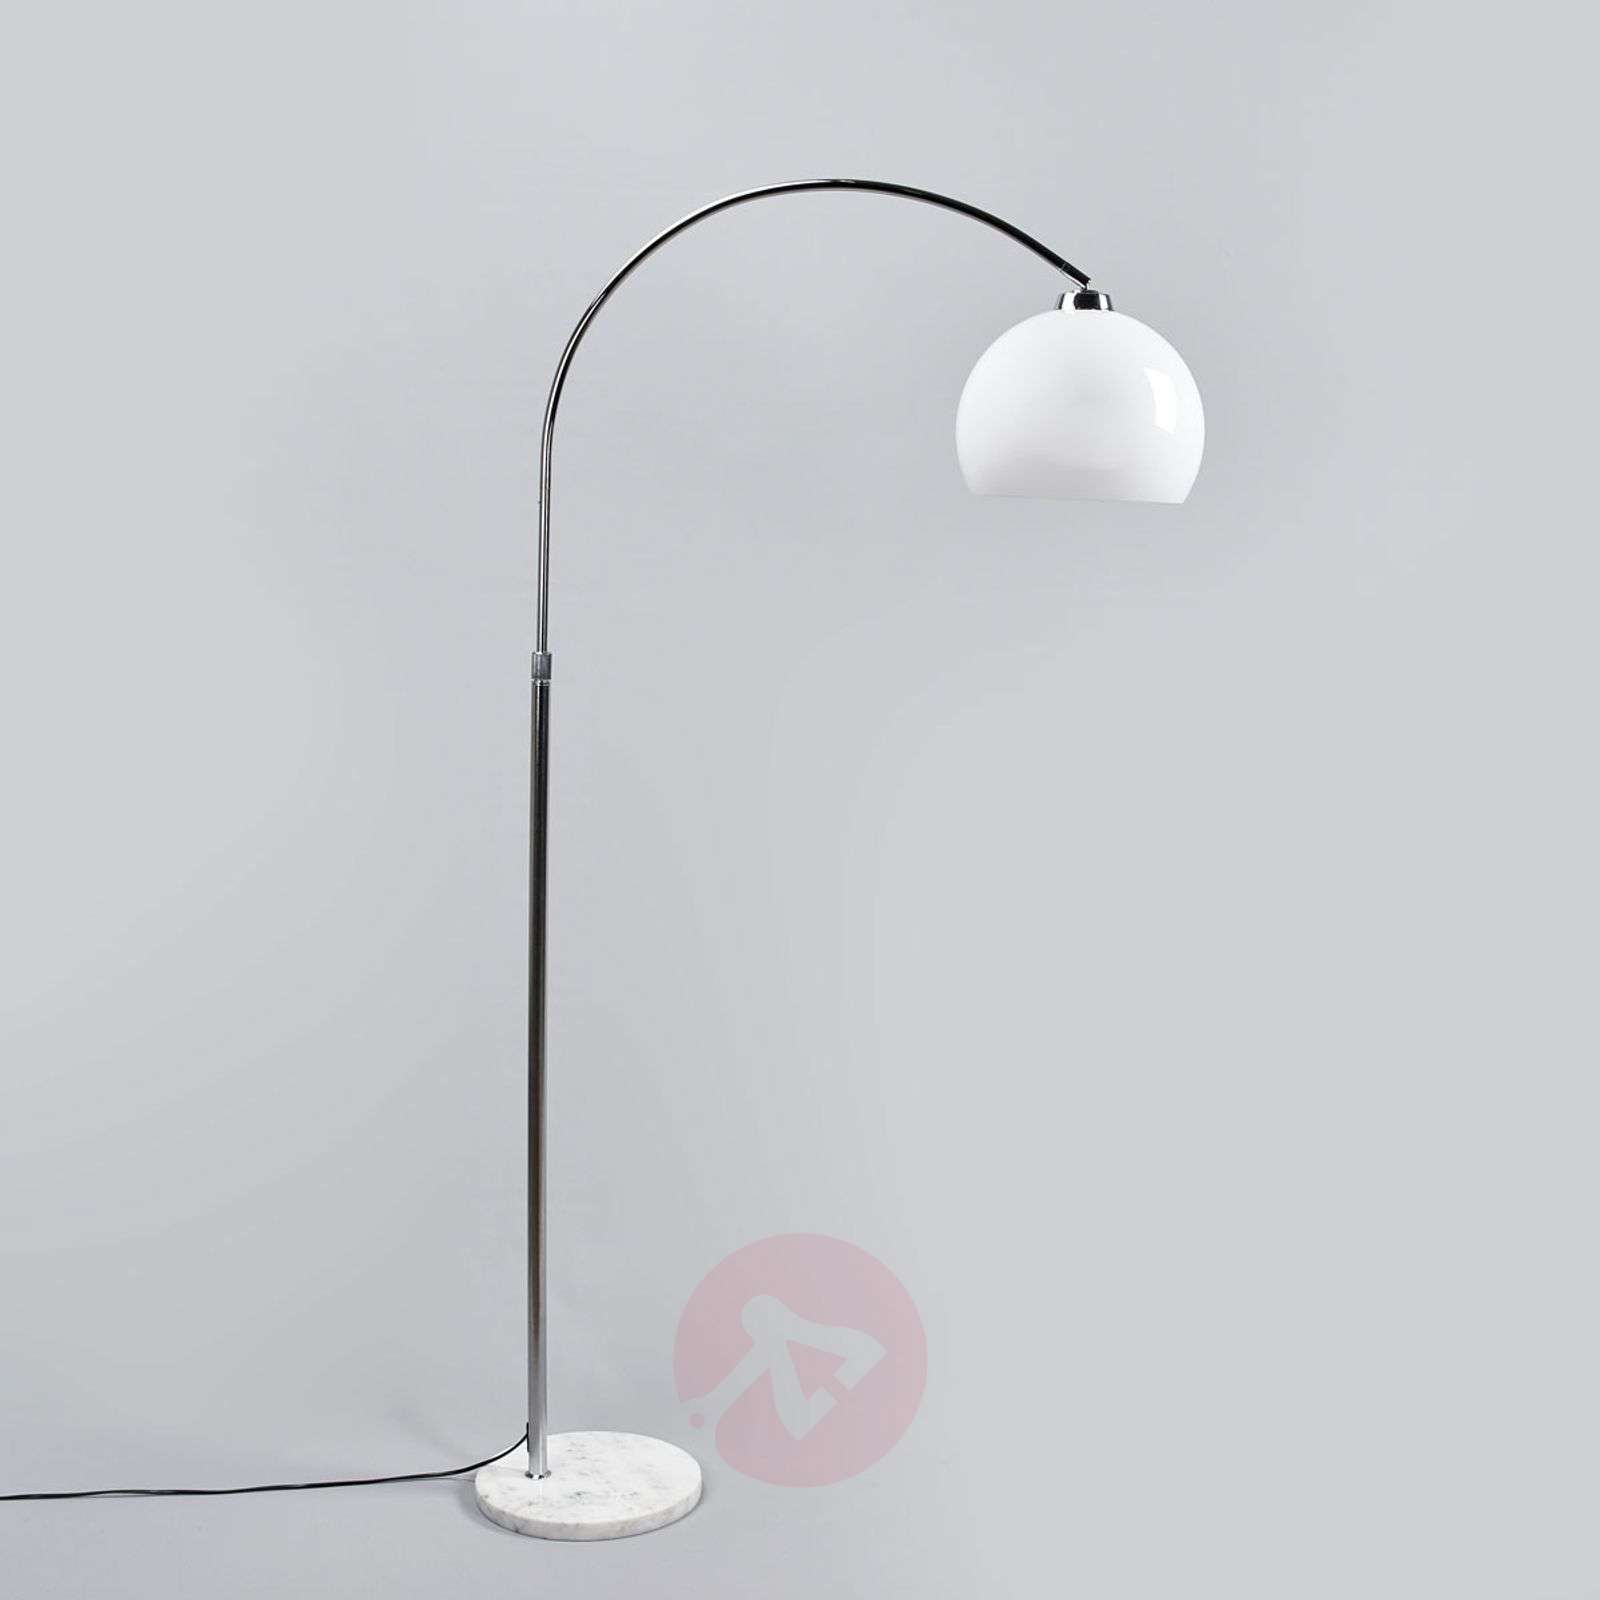 Arc lamp Sveri, marble base and white lampshade-9945219-01